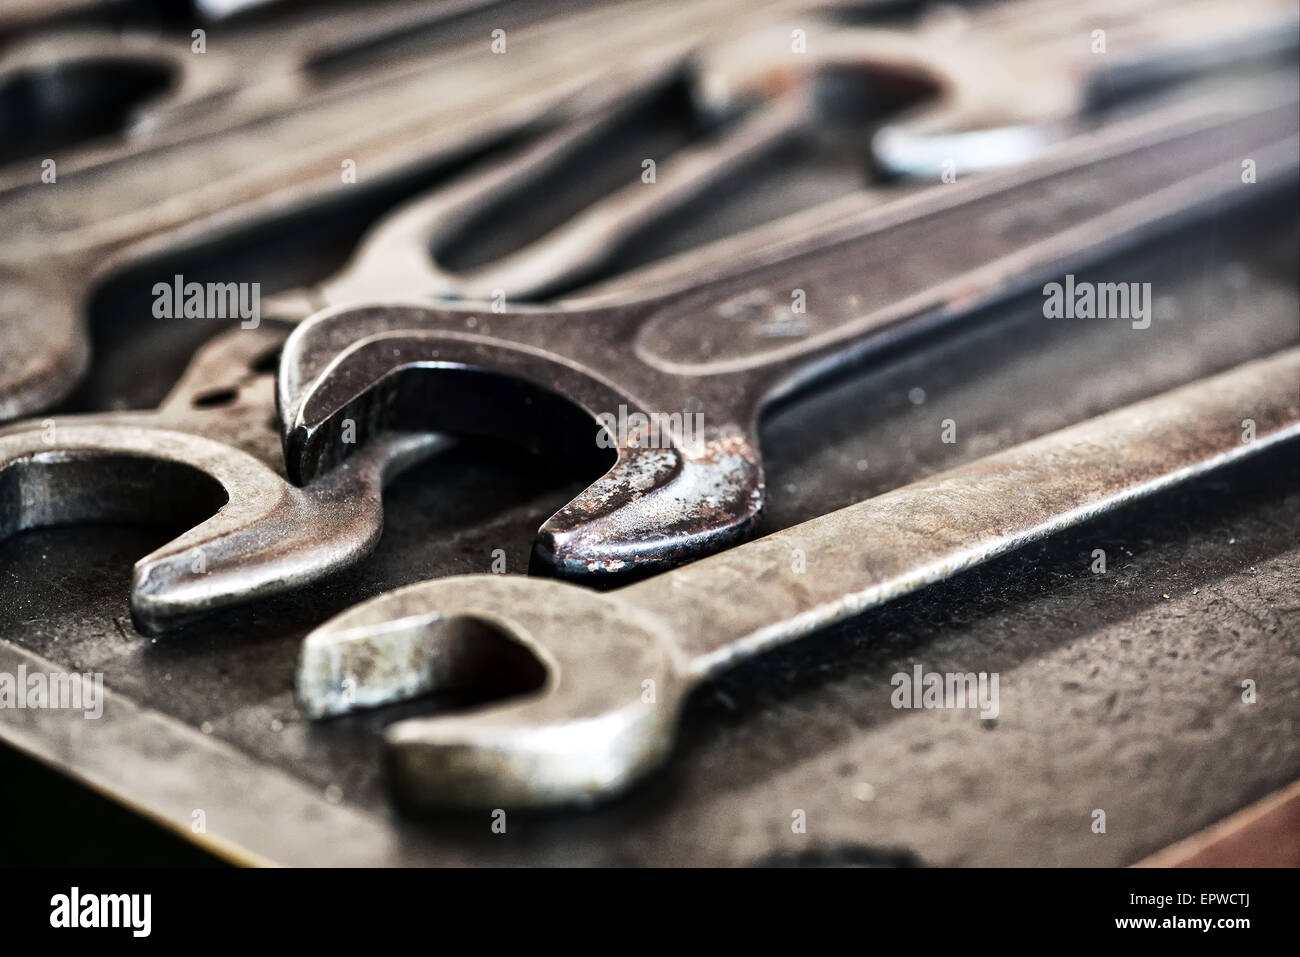 Collection of used dirty old grunge metal wrenches and spanners lying on a workbench in an engineering workshop - Stock Image